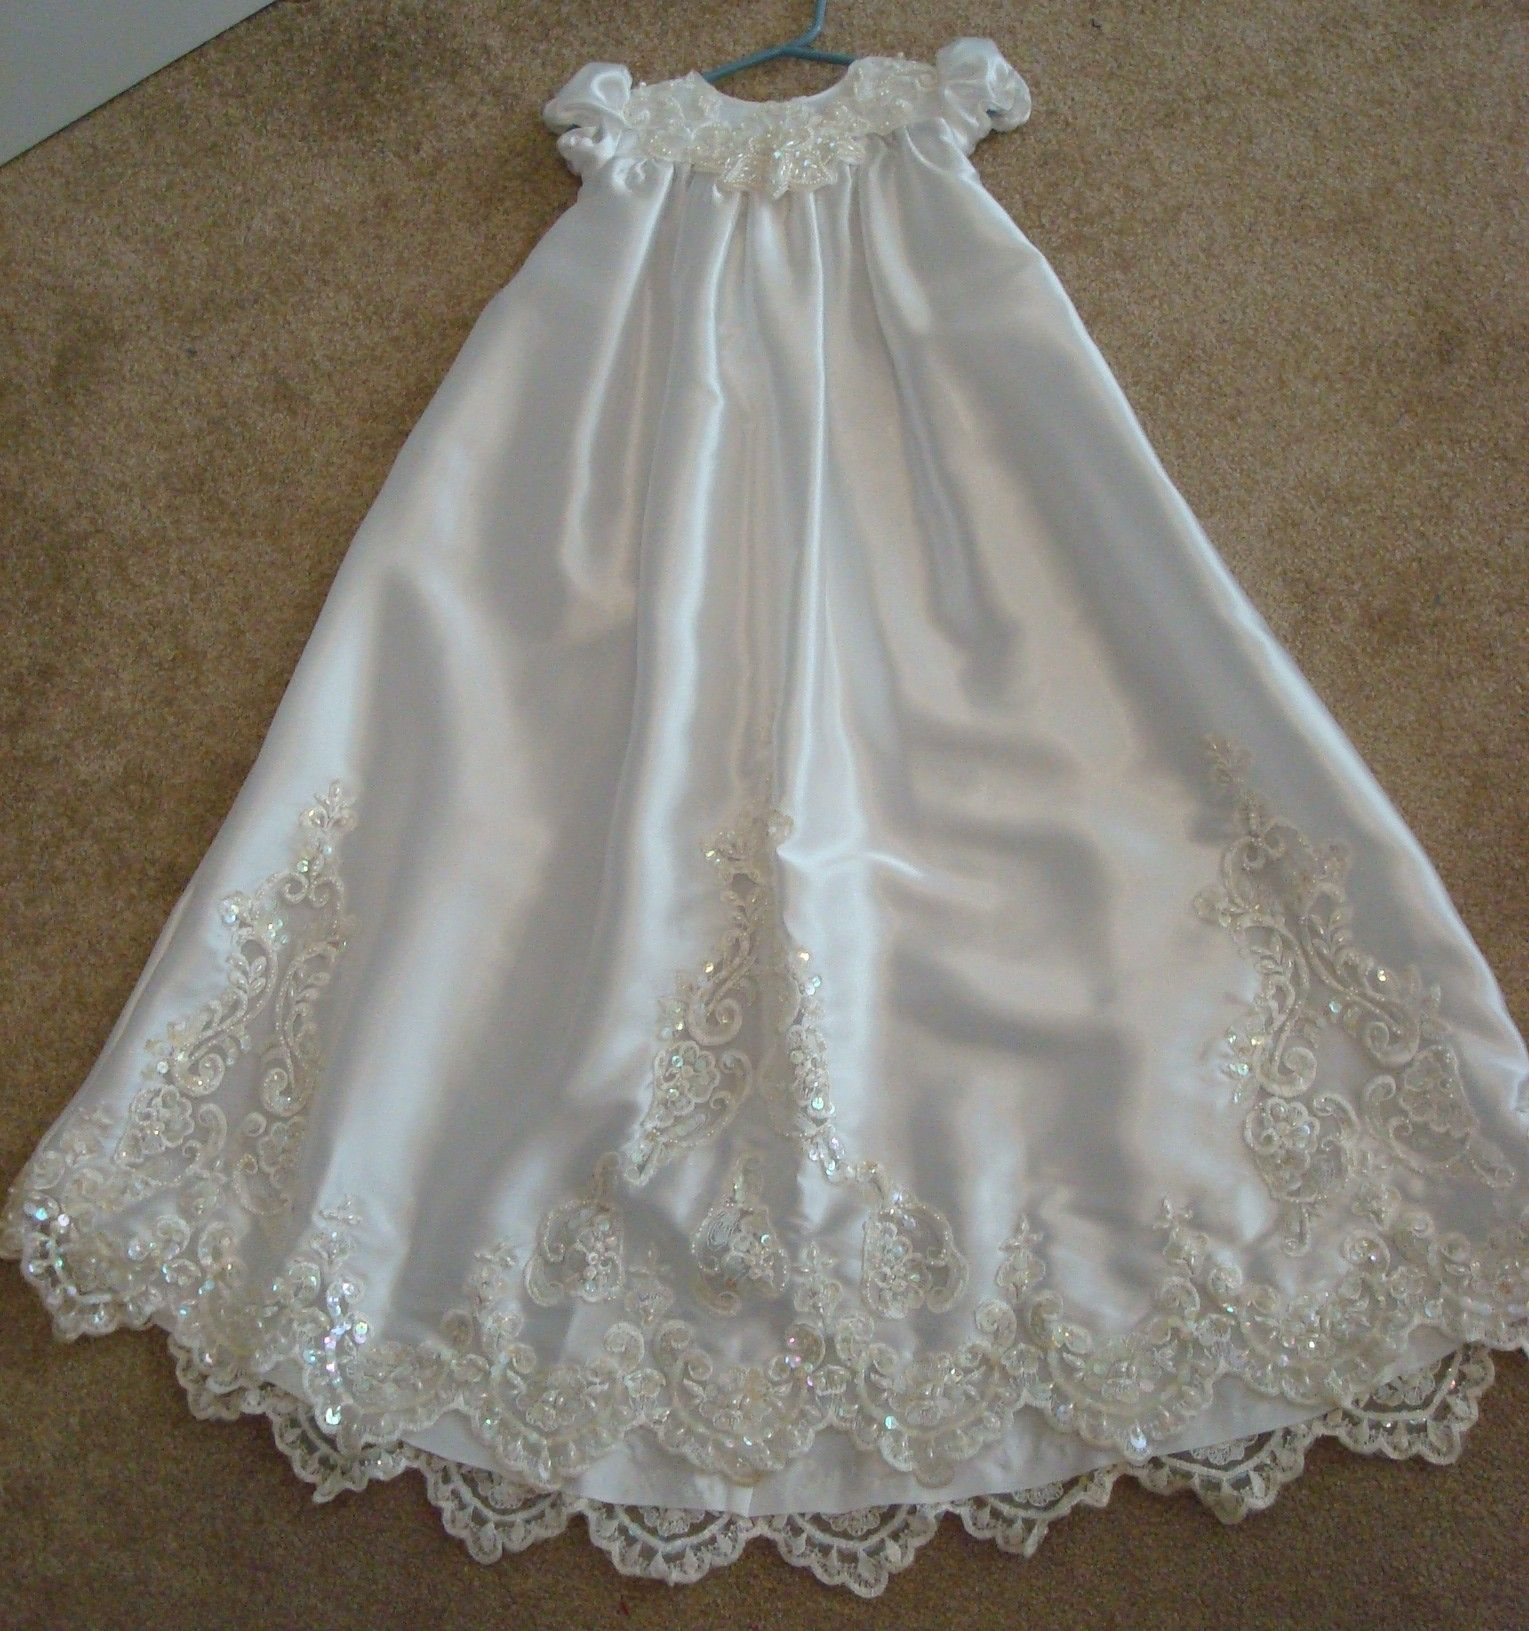 Christening Gowns From Wedding Dresses: Christening Gown From Upcycled Wedding Dress